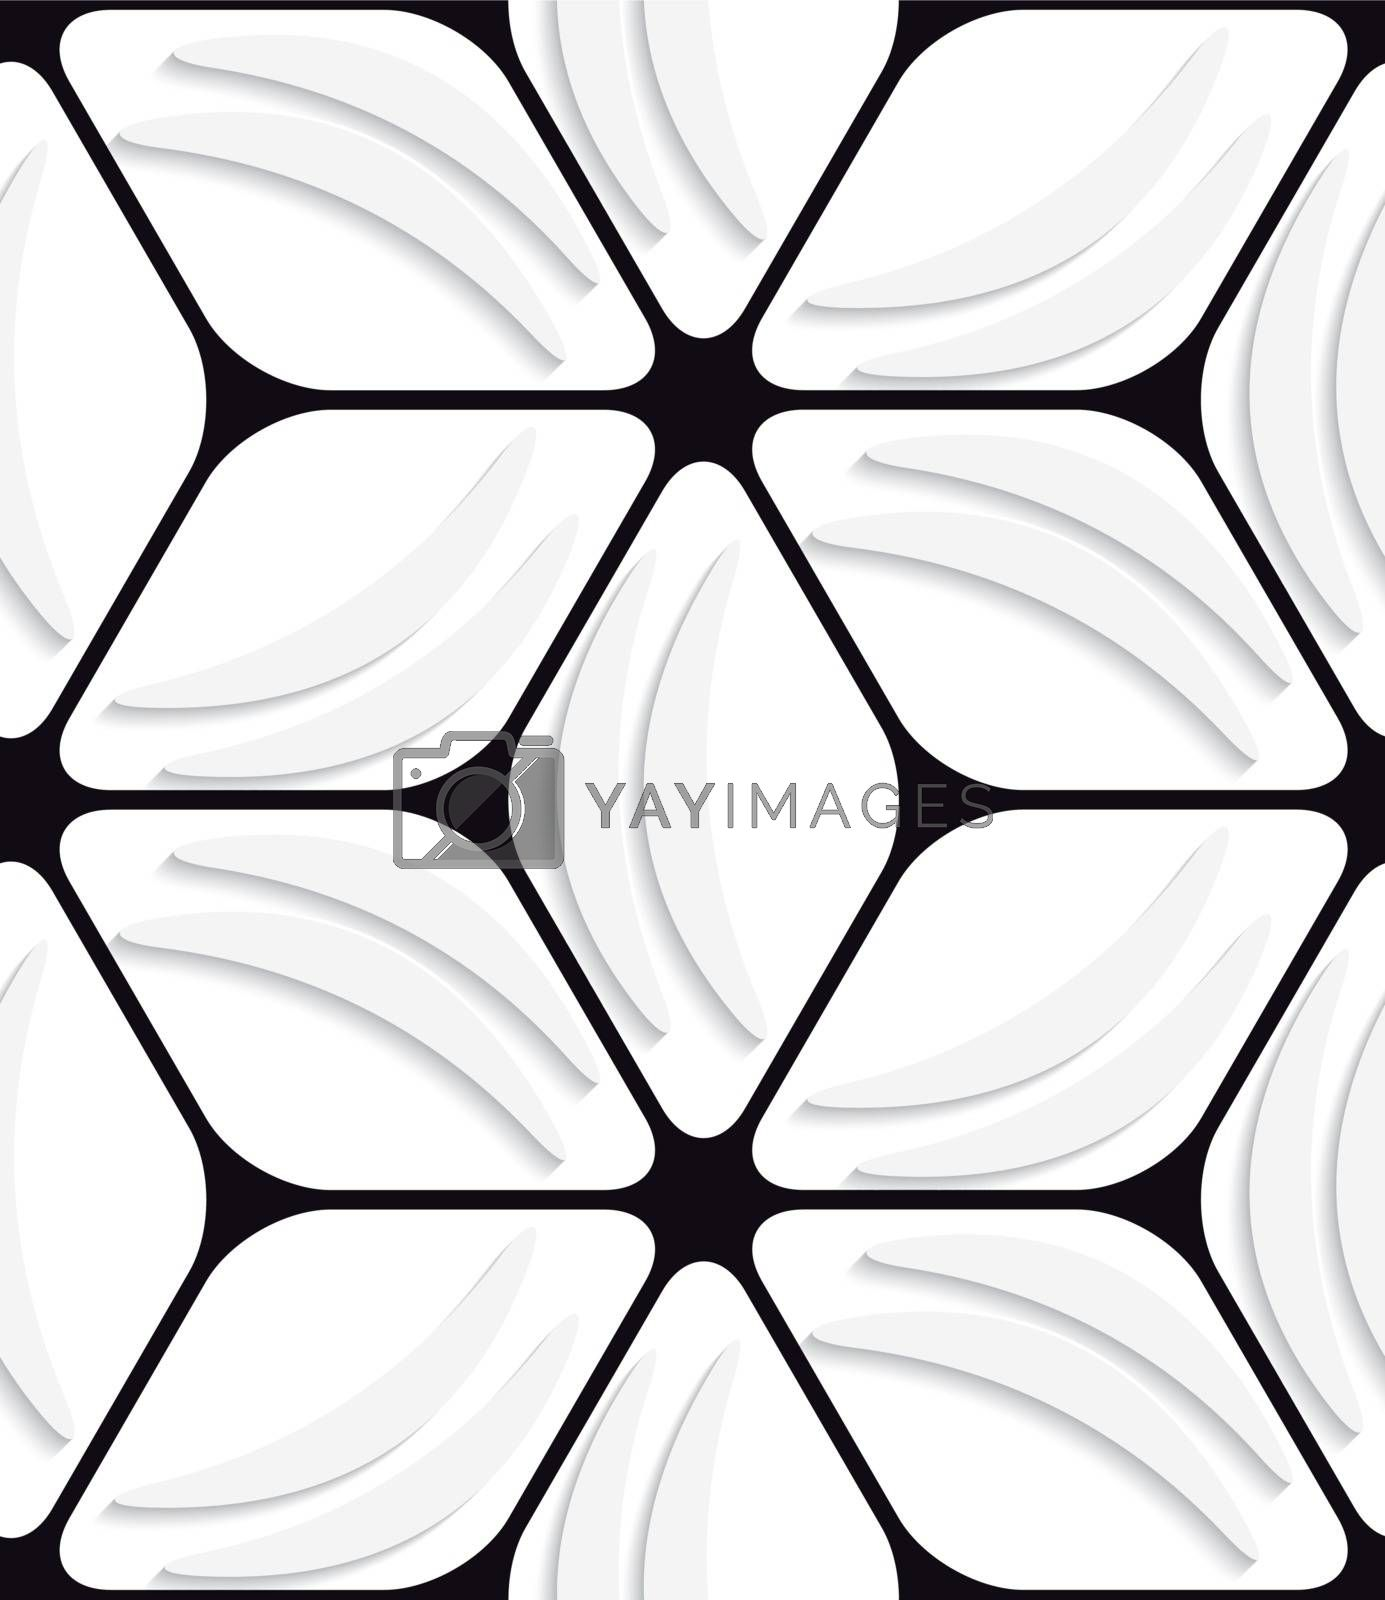 Abstract 3d geometrical seamless background. White banana shapes with cut out of paper effect and black hexagon net.